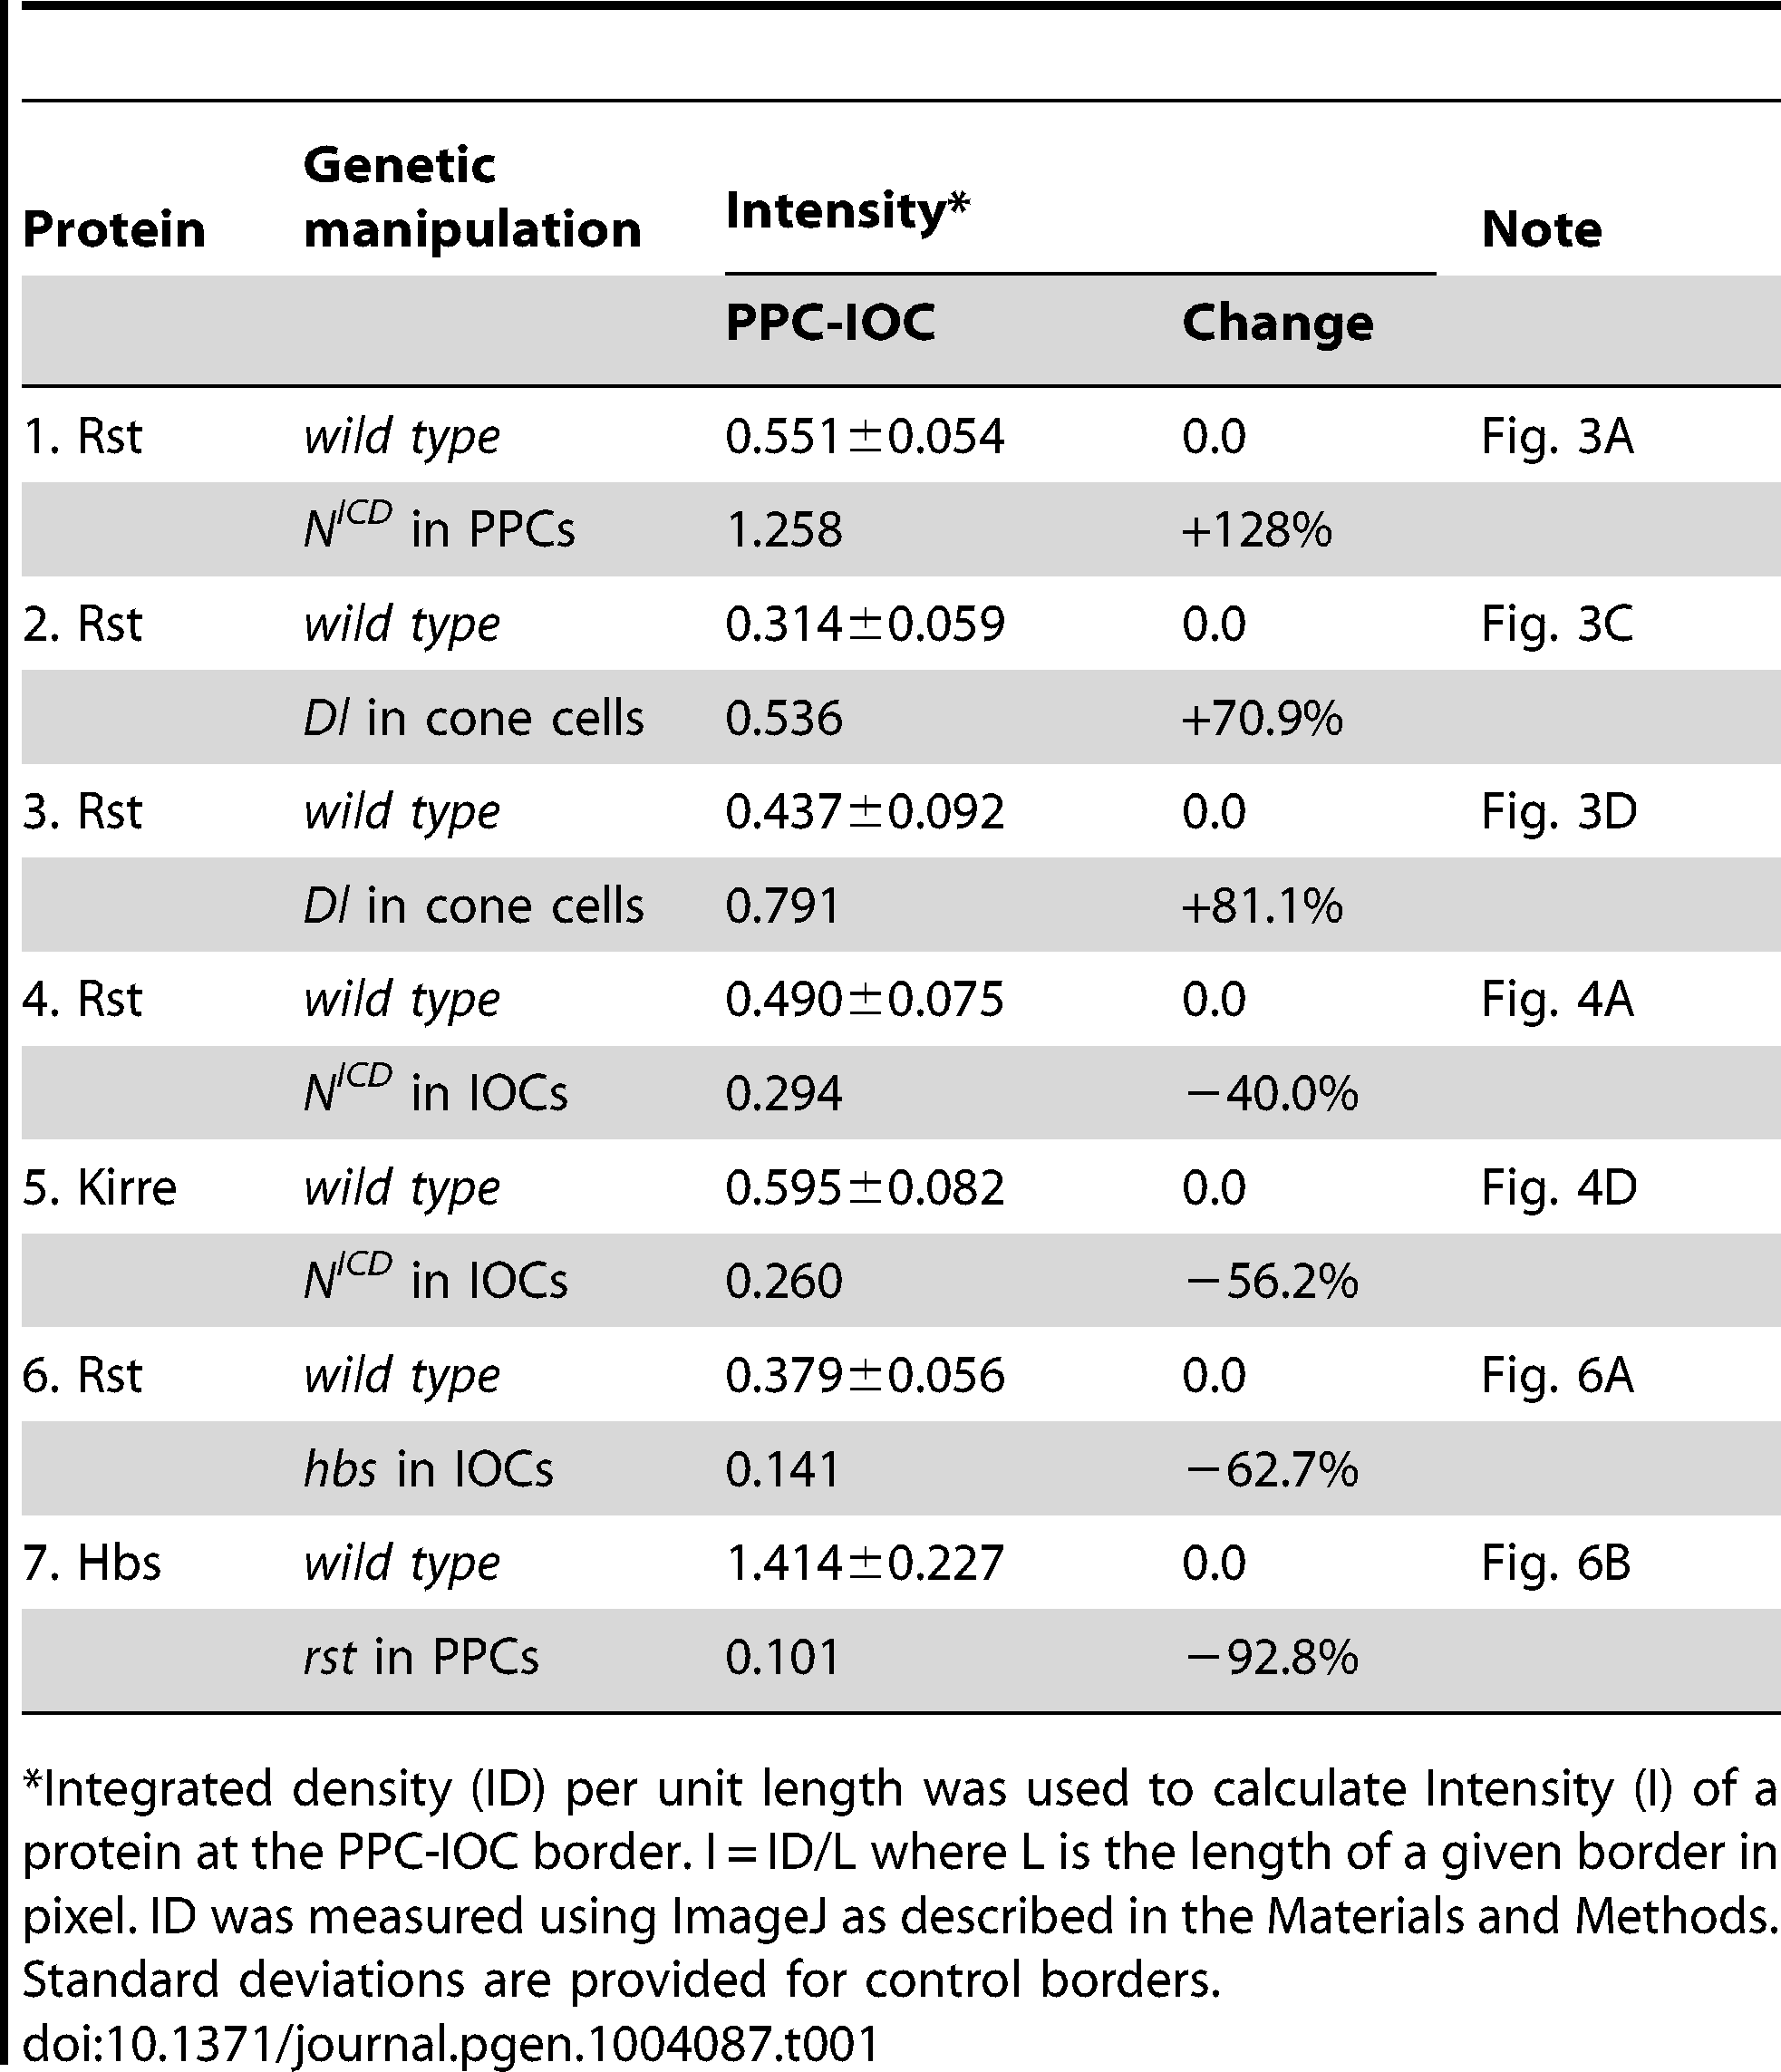 Quantification of changes in the level of Rst or Hbs upon genetic manipulations.